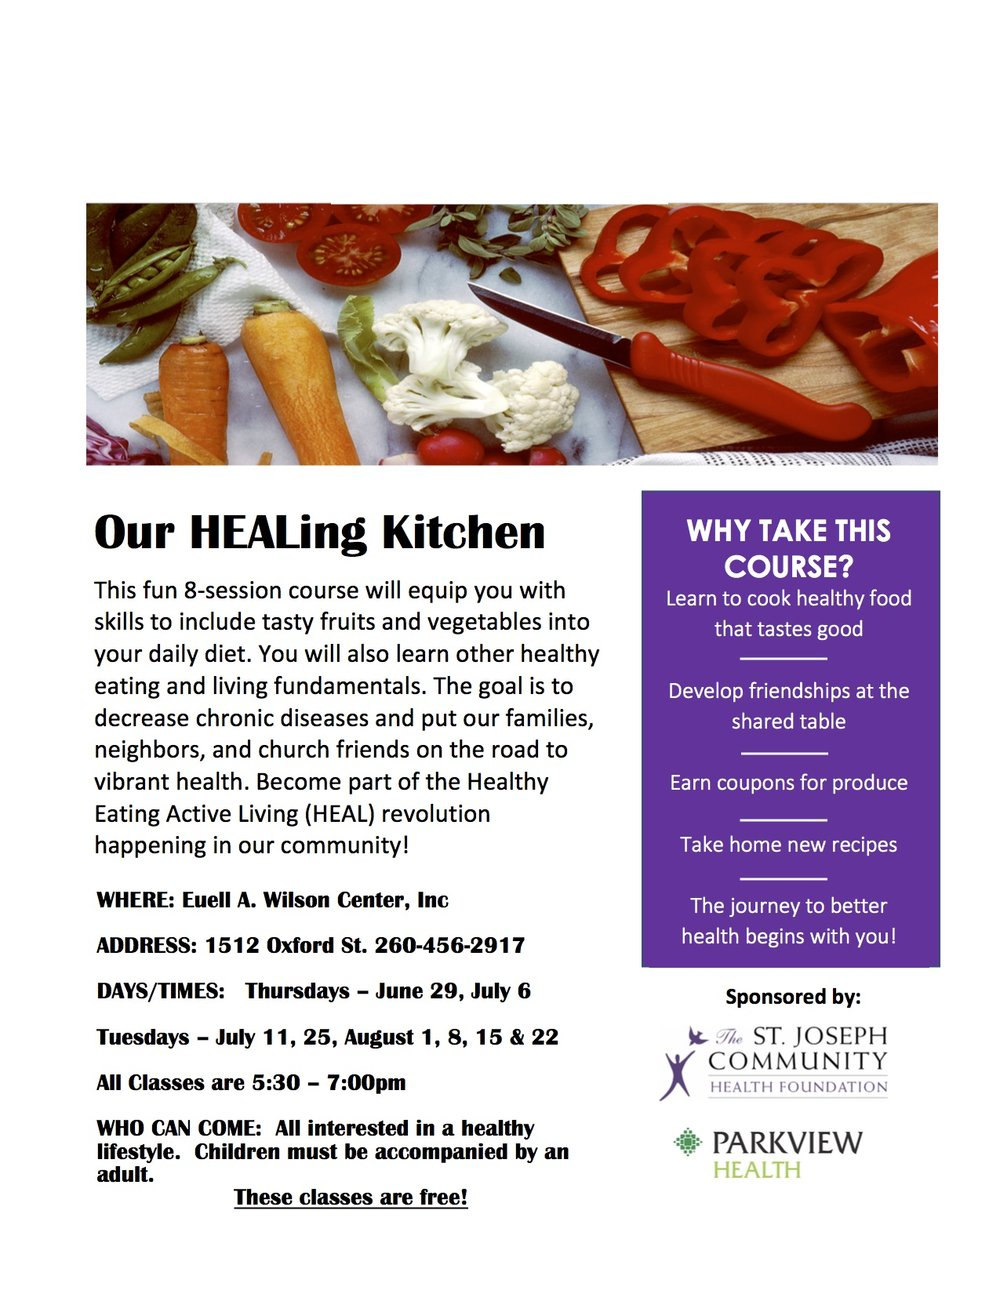 Our Healing Kitchen